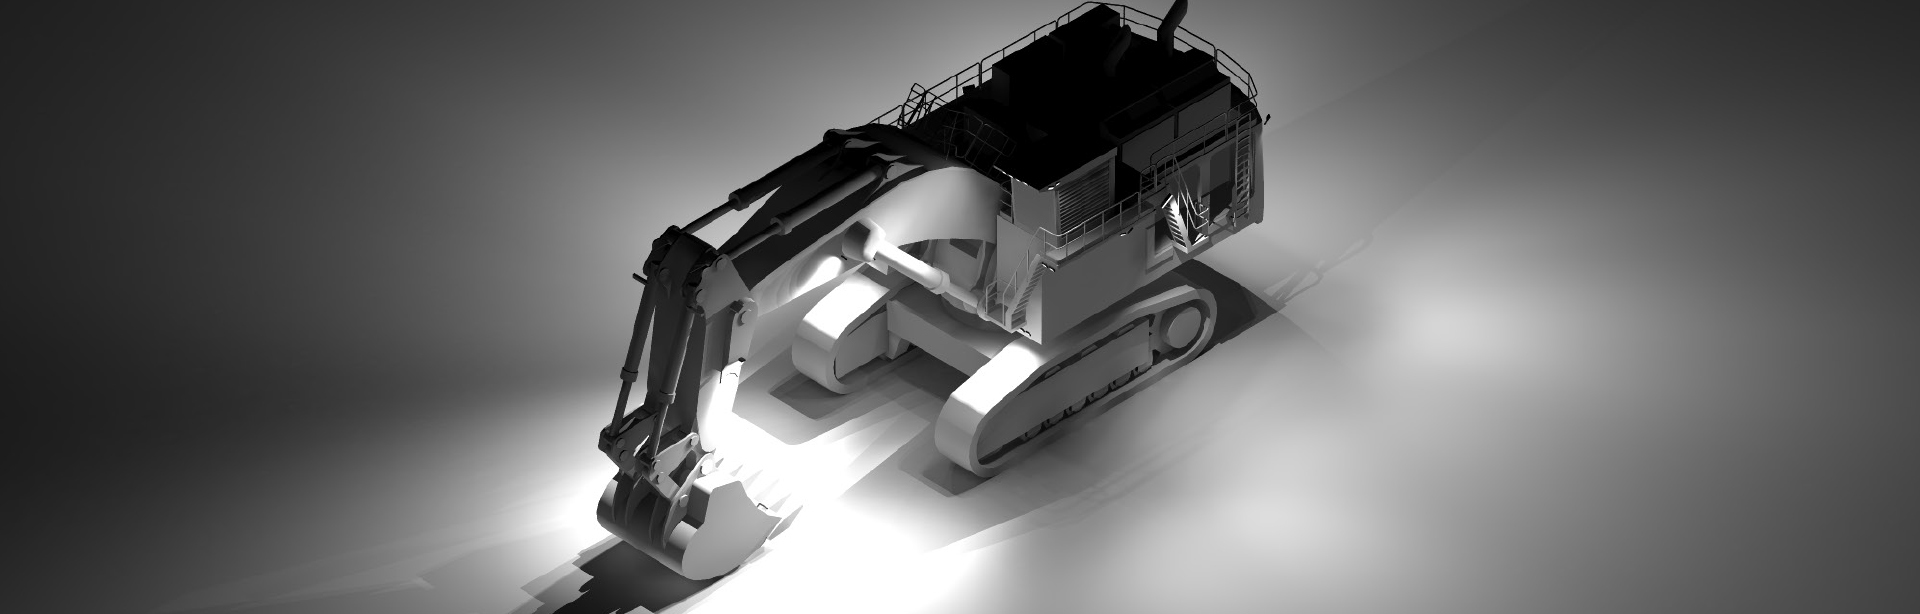 This Lighting Design Simulation Report clearly illustrates how CP24 LED Floodlight enhances the light output of a Liebherr R9800 mining excavator.